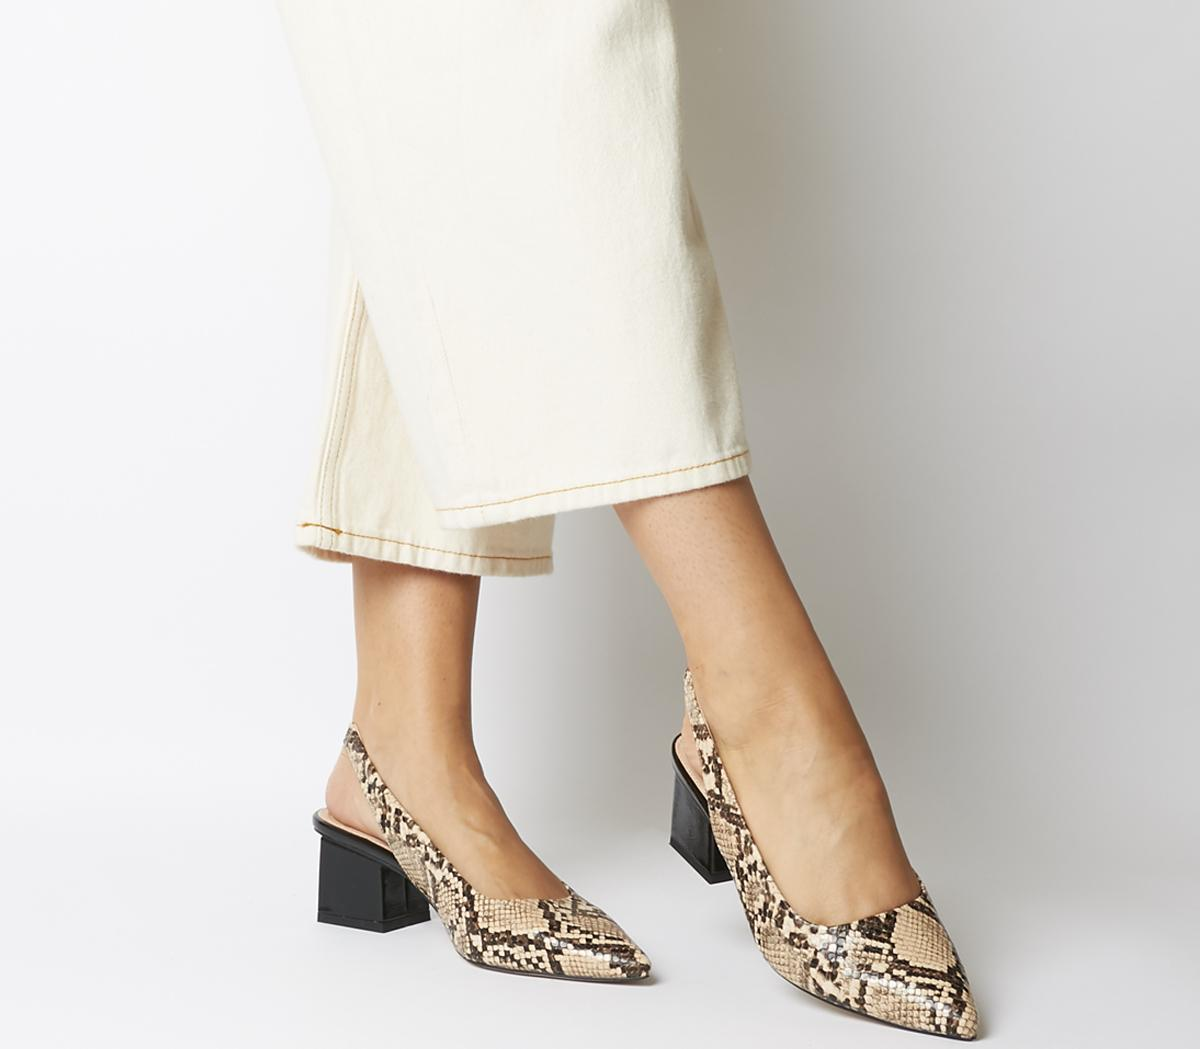 Mindless Point Slingback Court Heels